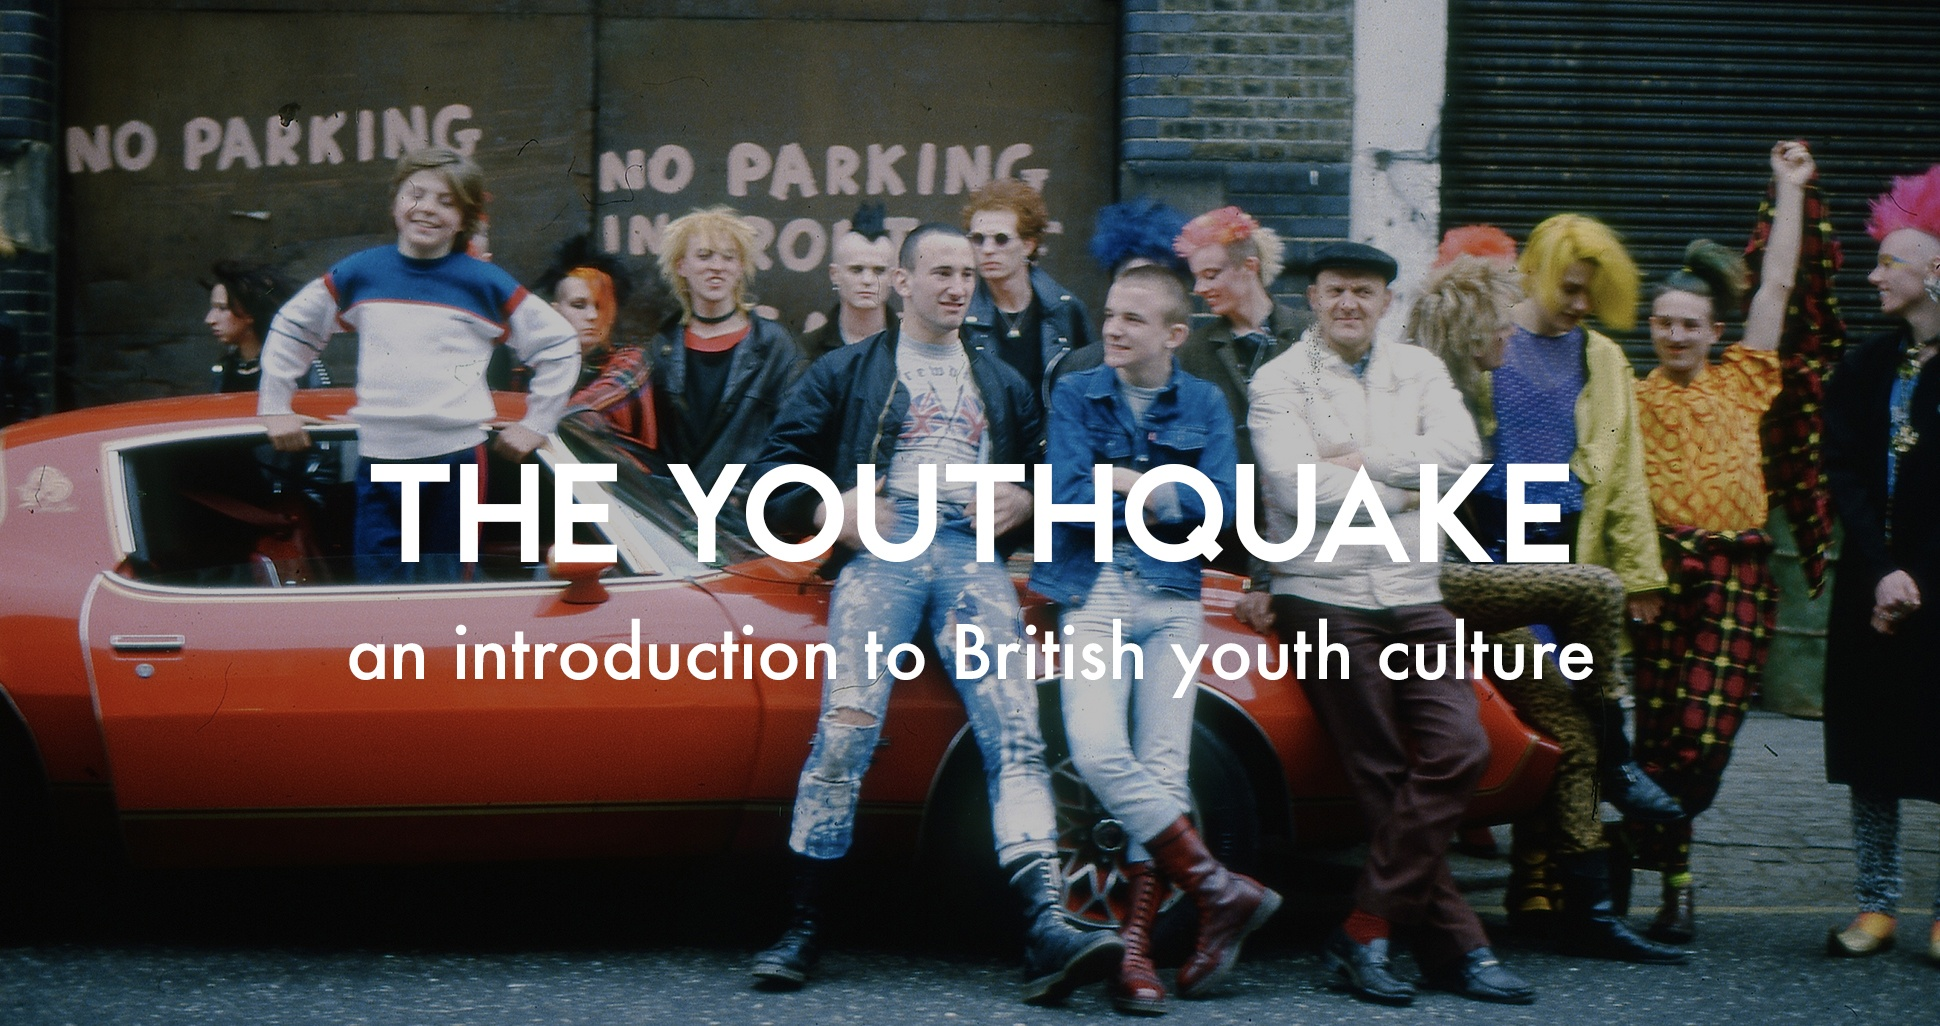 The history of British youth culture: Youthquake, an introduction to British youth culture